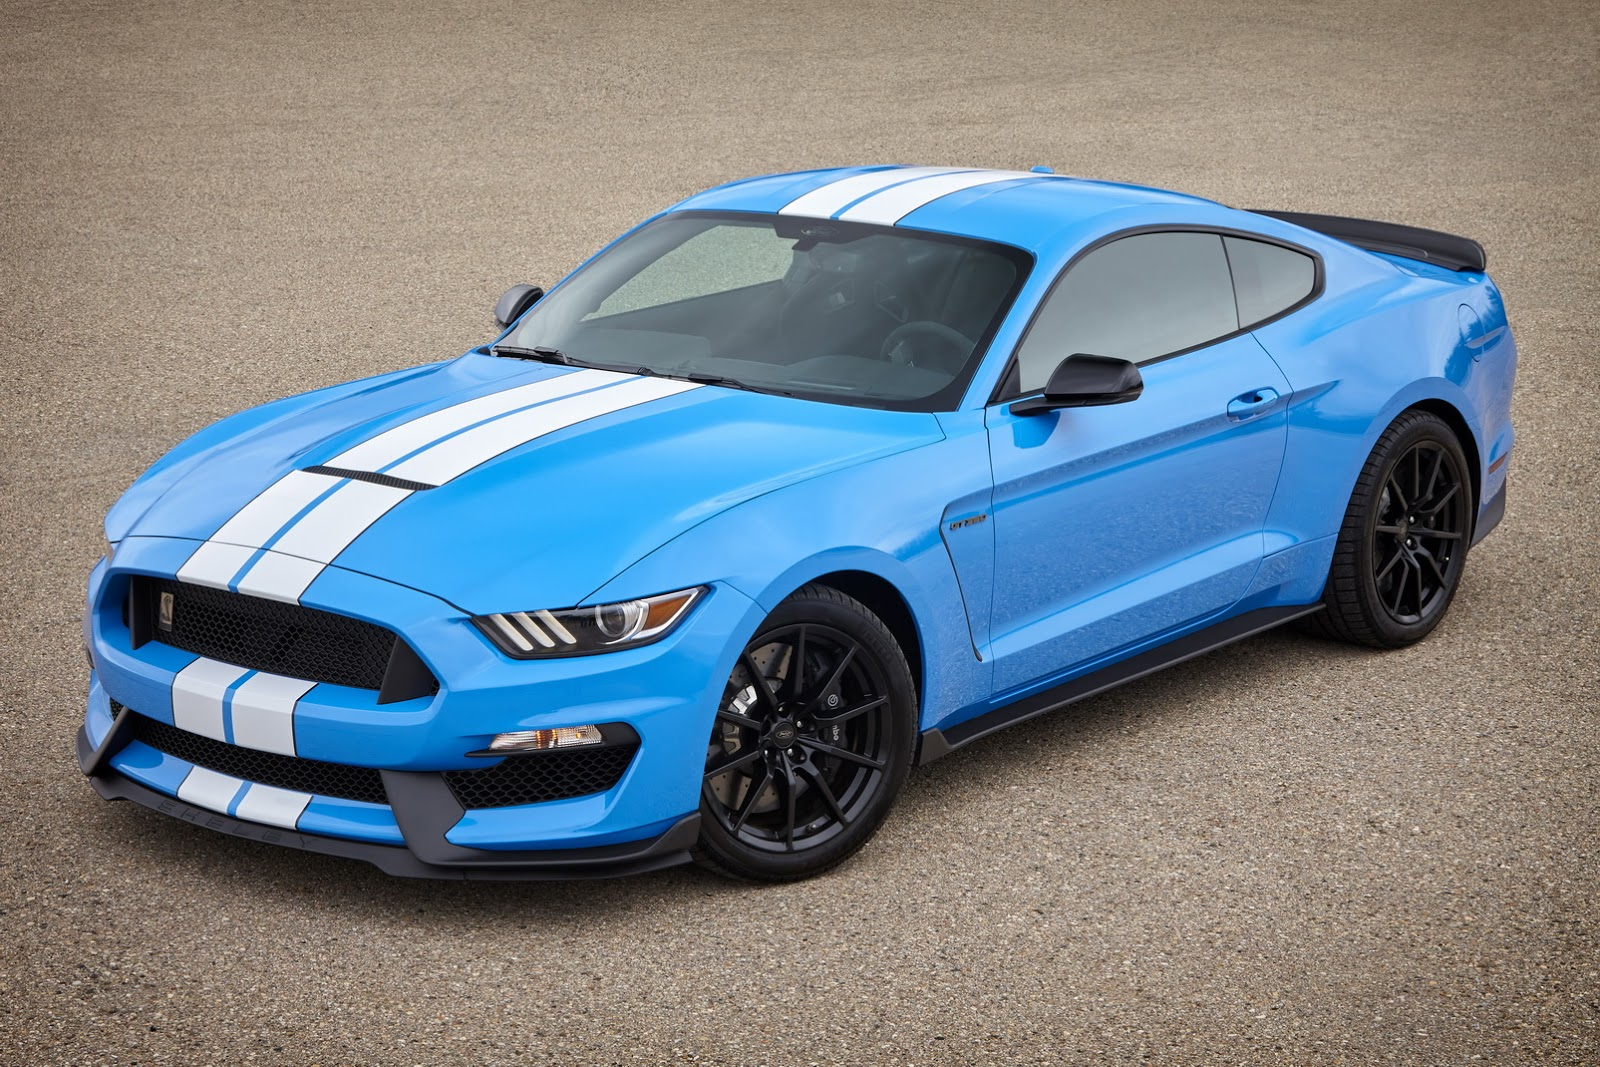 Shelby mustang photo - 8